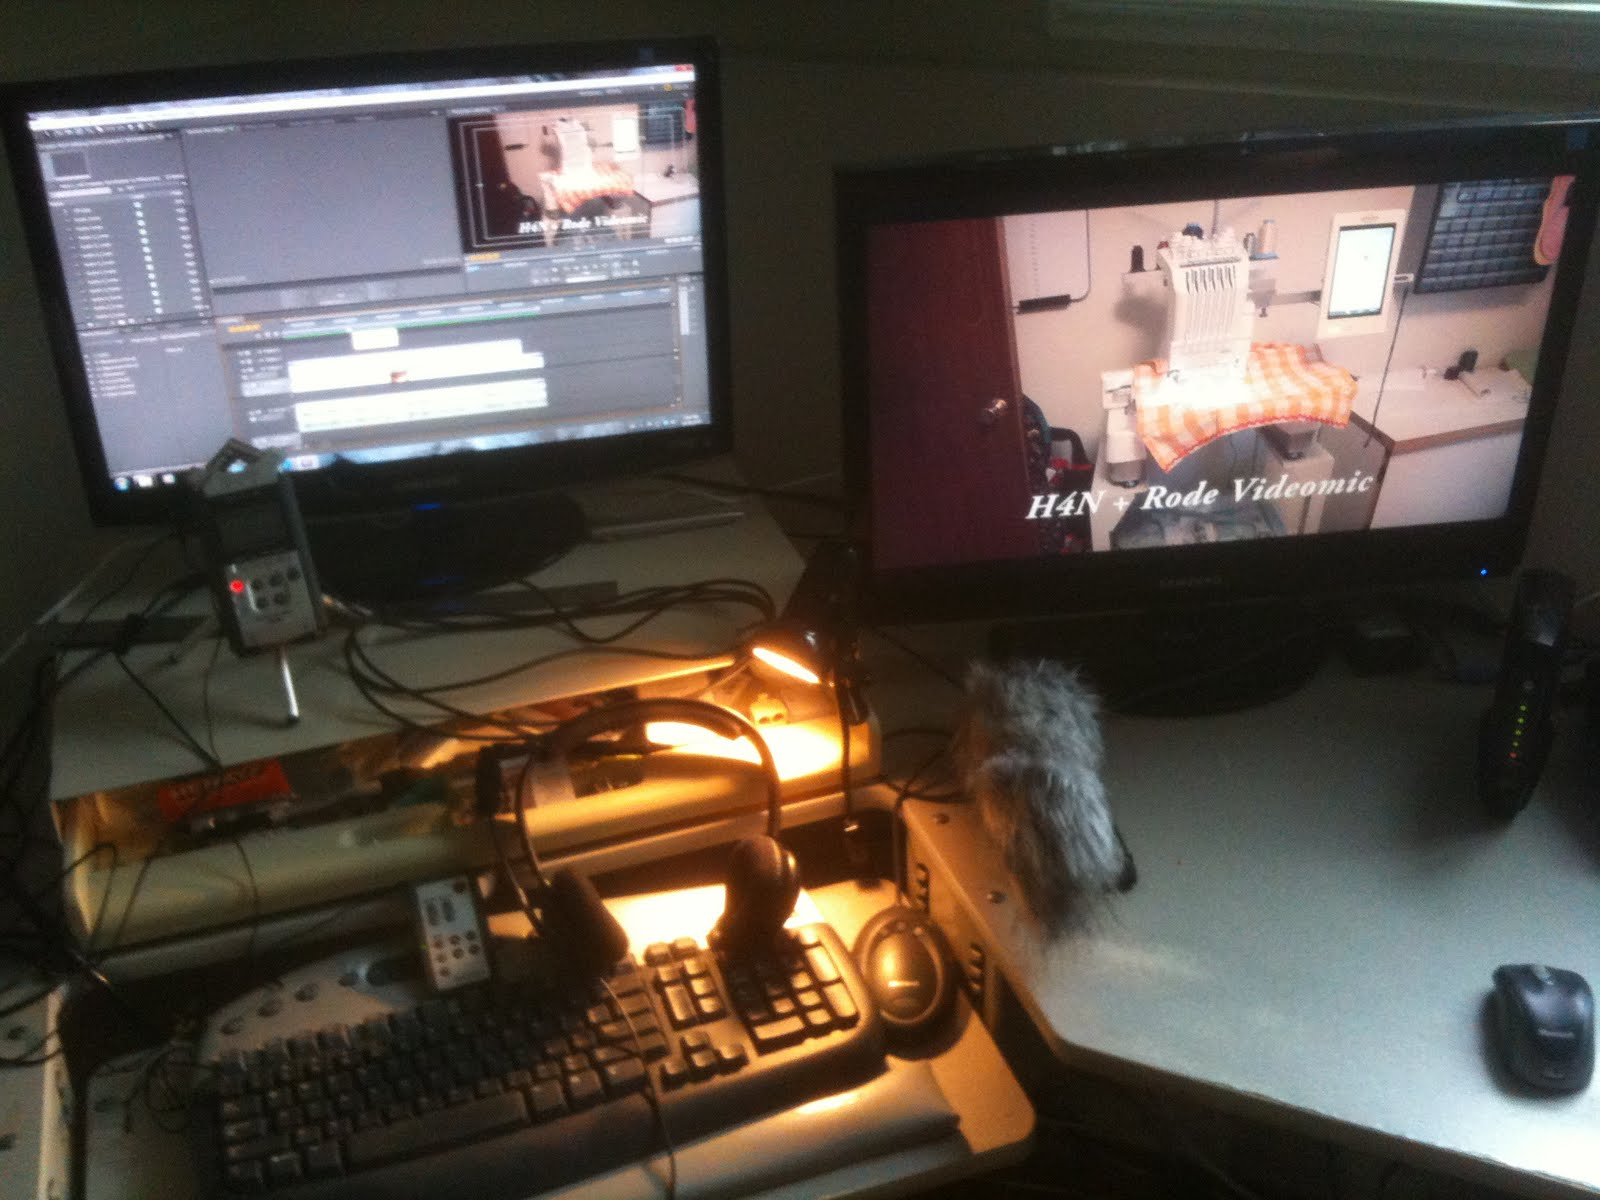 Digital Nature Photography: The Basic Home Video Editing ...